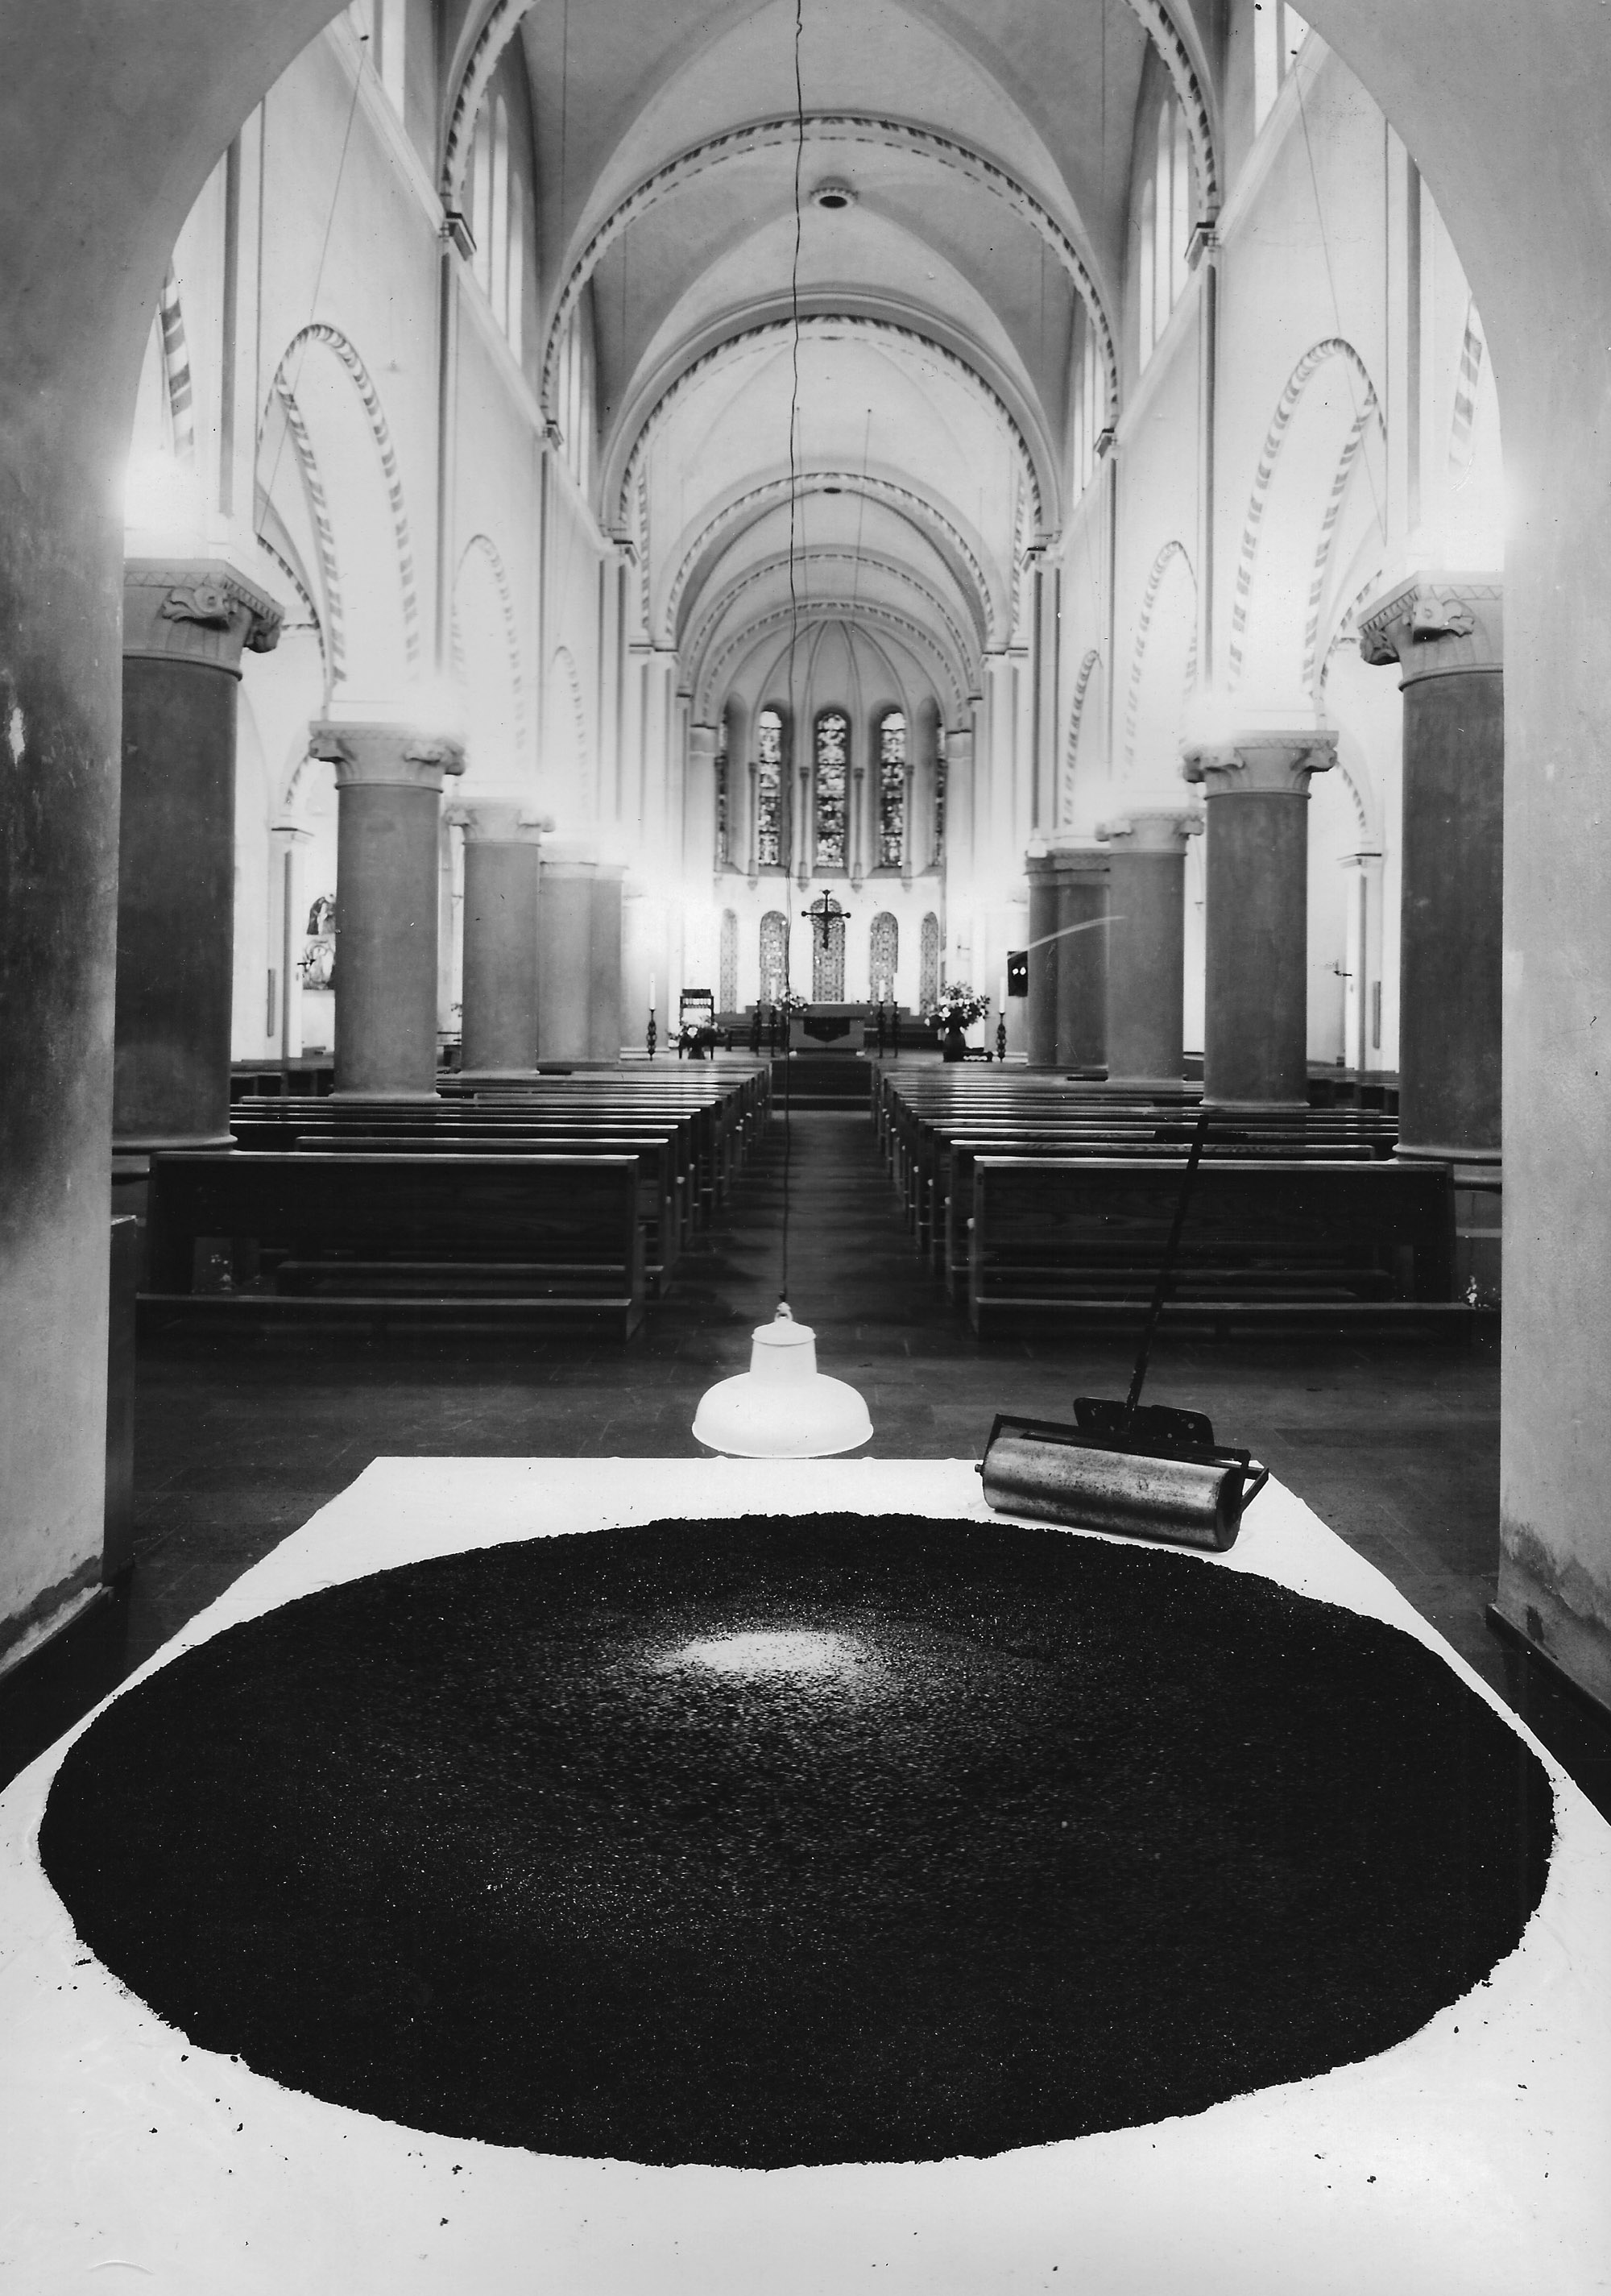 A large circle of tar placed on a white sheet on the floor inside a church.